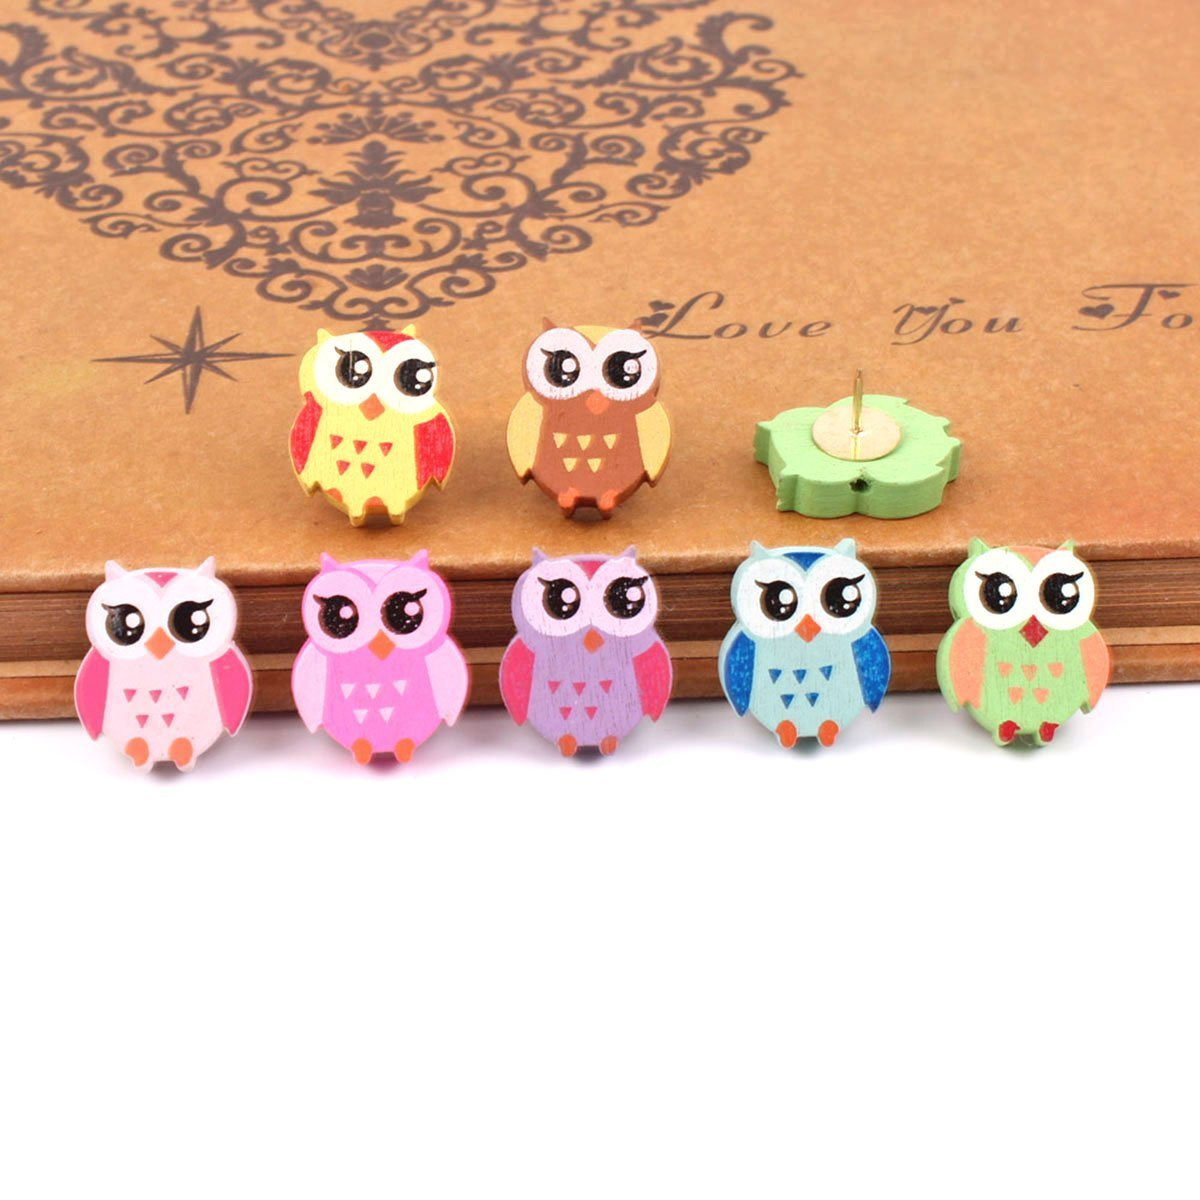 Yalis 12 Pcs Owl Push Pins,Creative Pushpins/Thumbtacks Decorative for School Home and Office, Assorted Colors